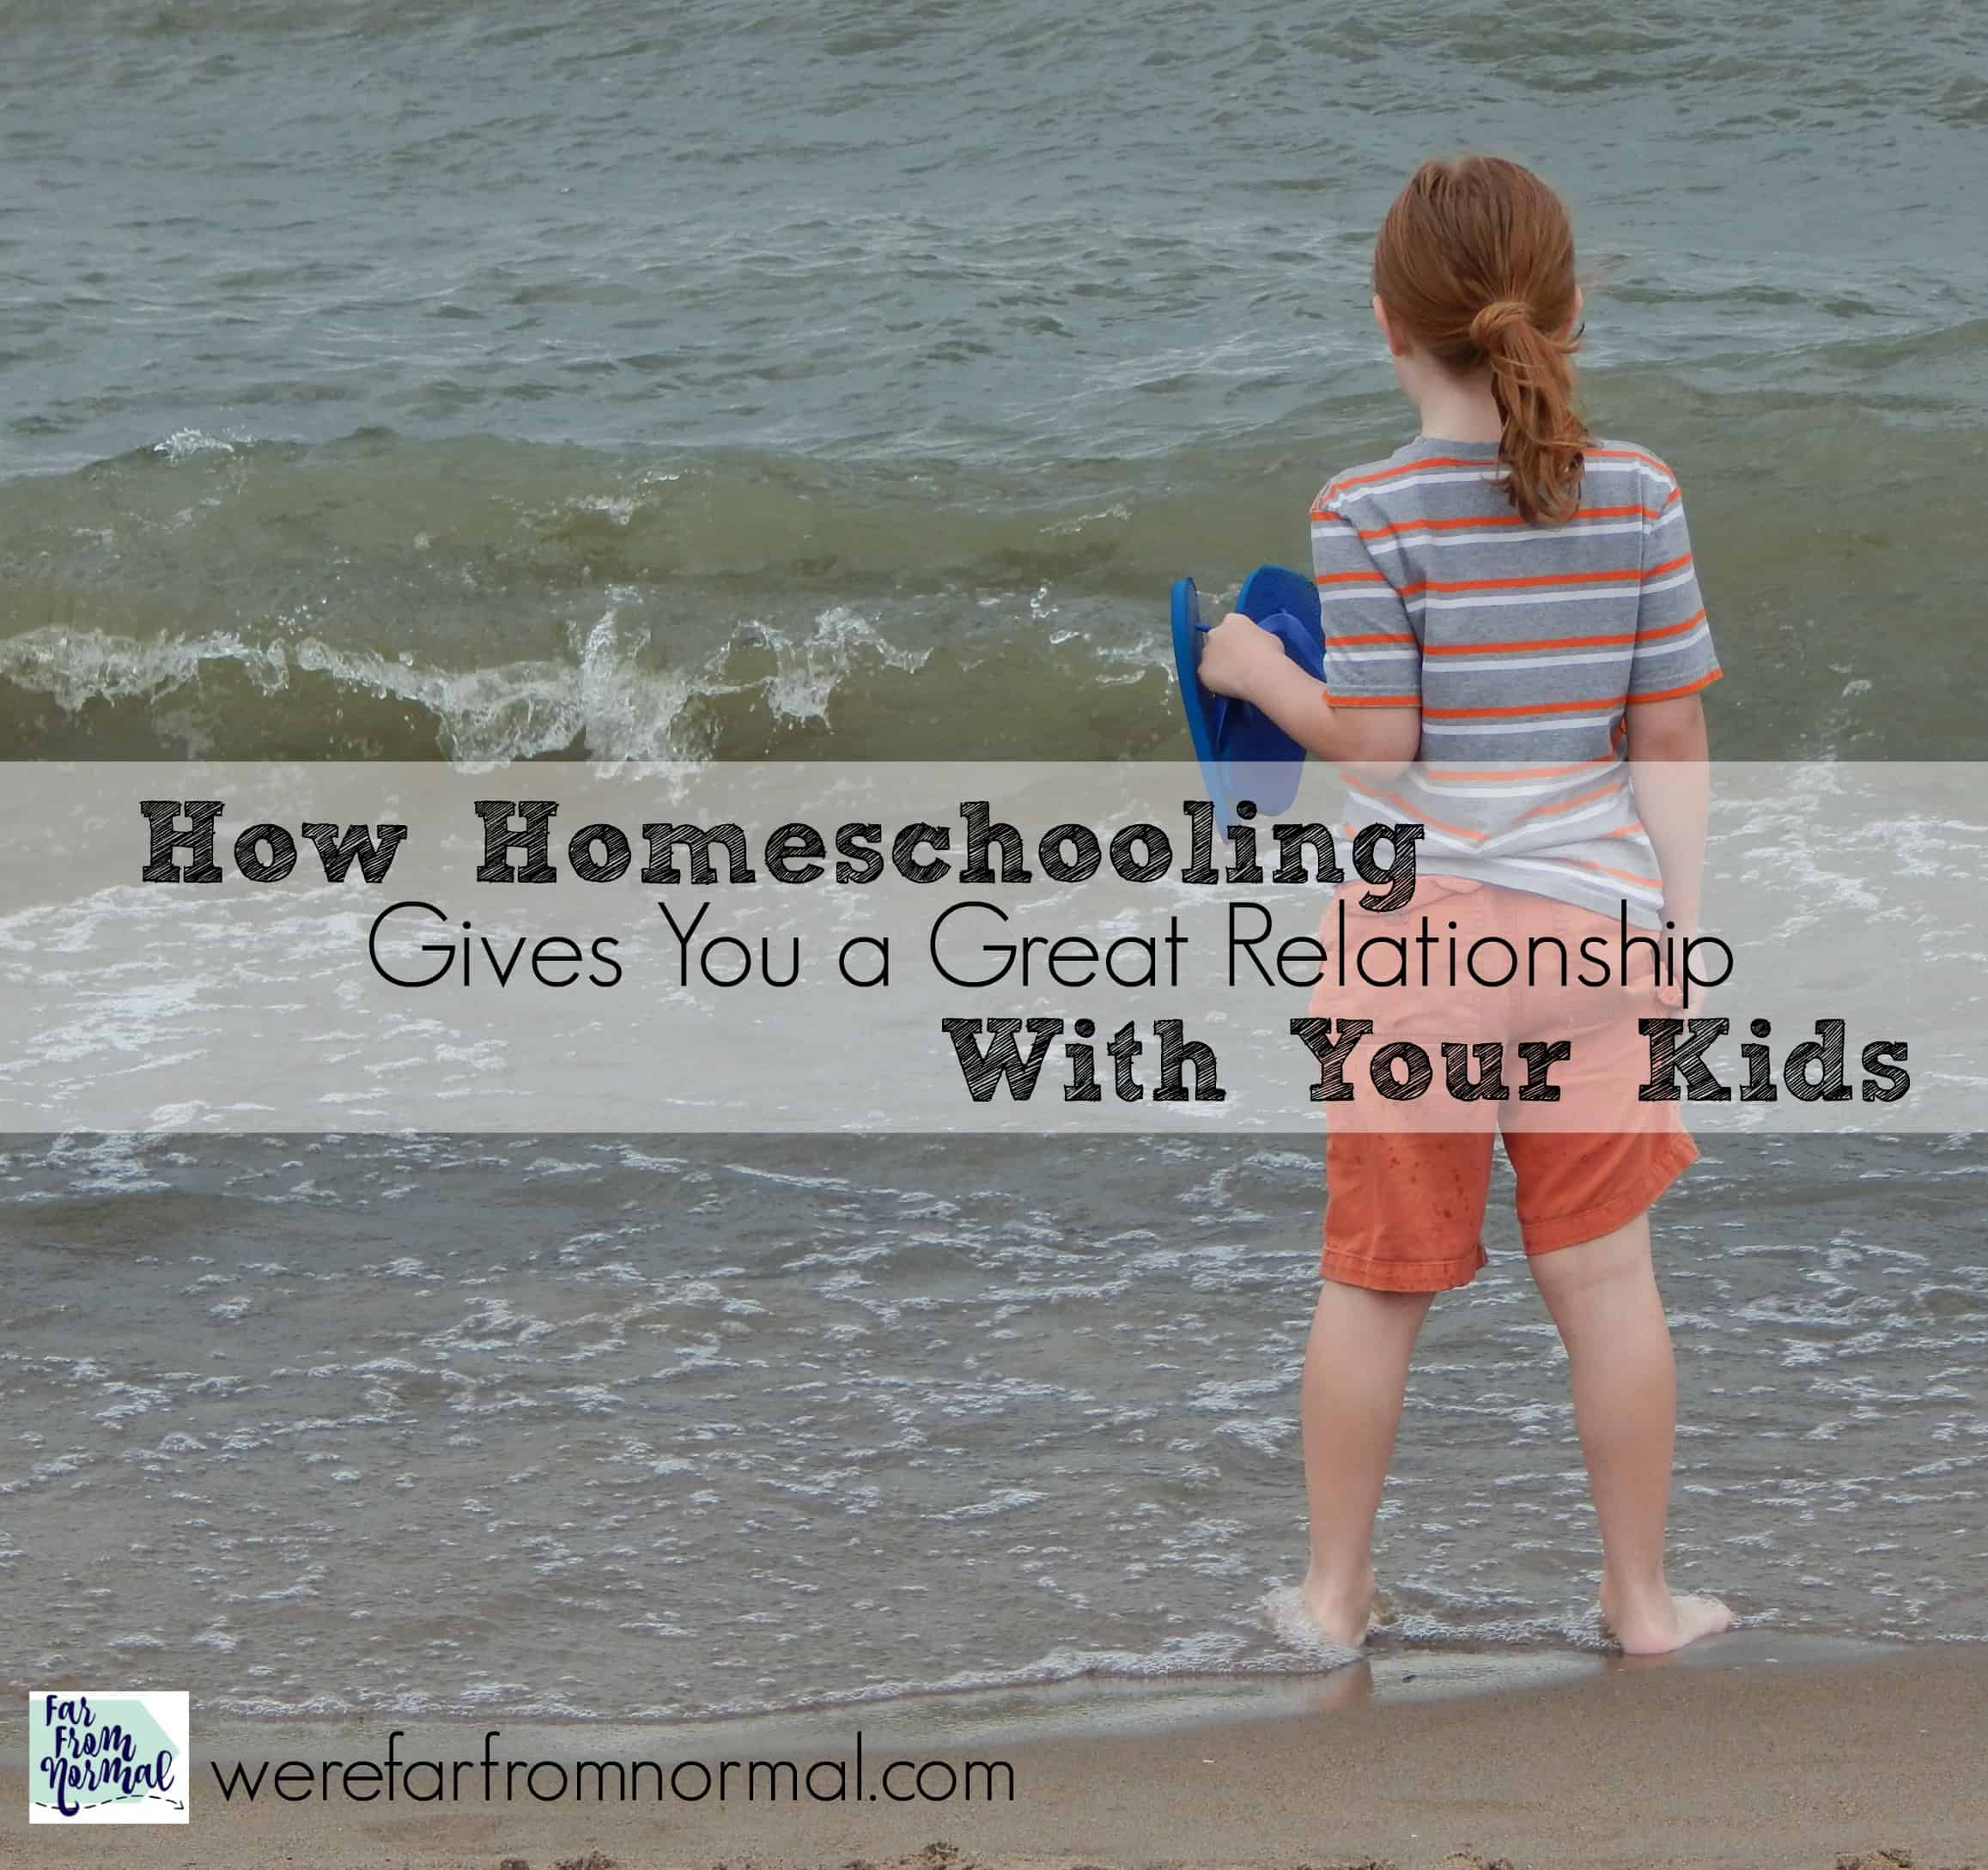 How Homeschooling Gives You a Great Relationship with Your Kids